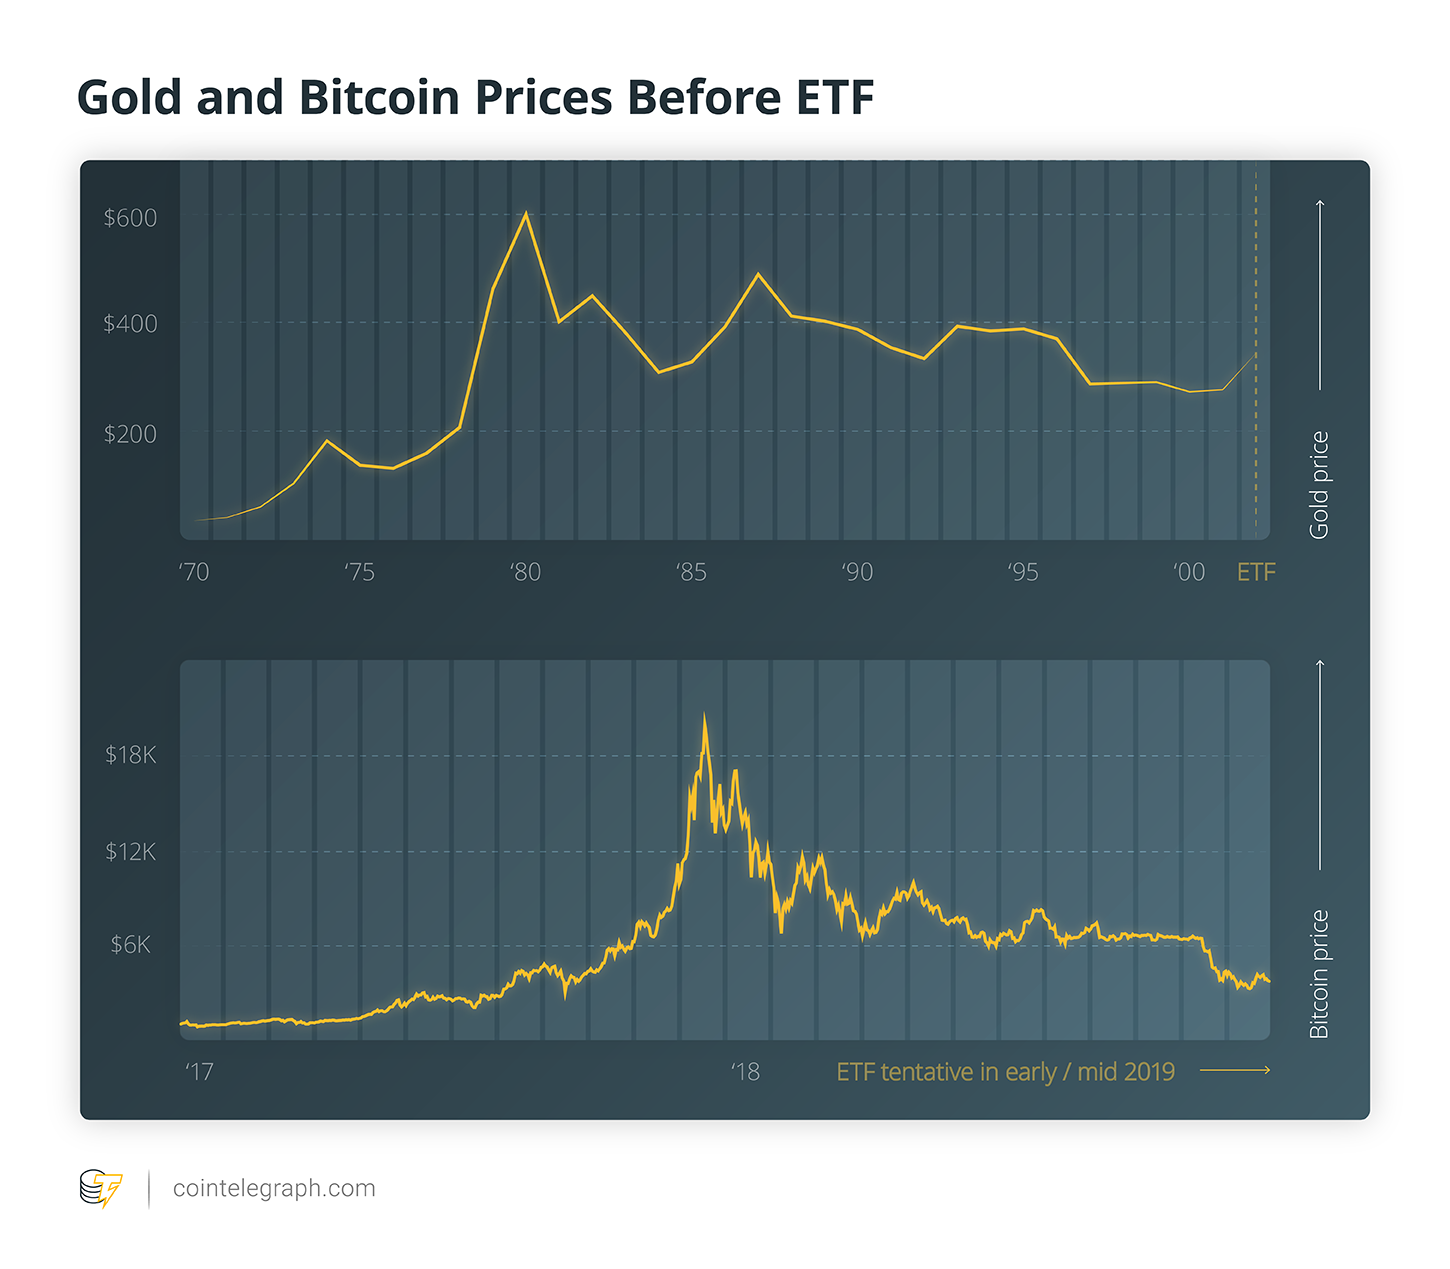 Gold and Bitcoin Prices Before ETF